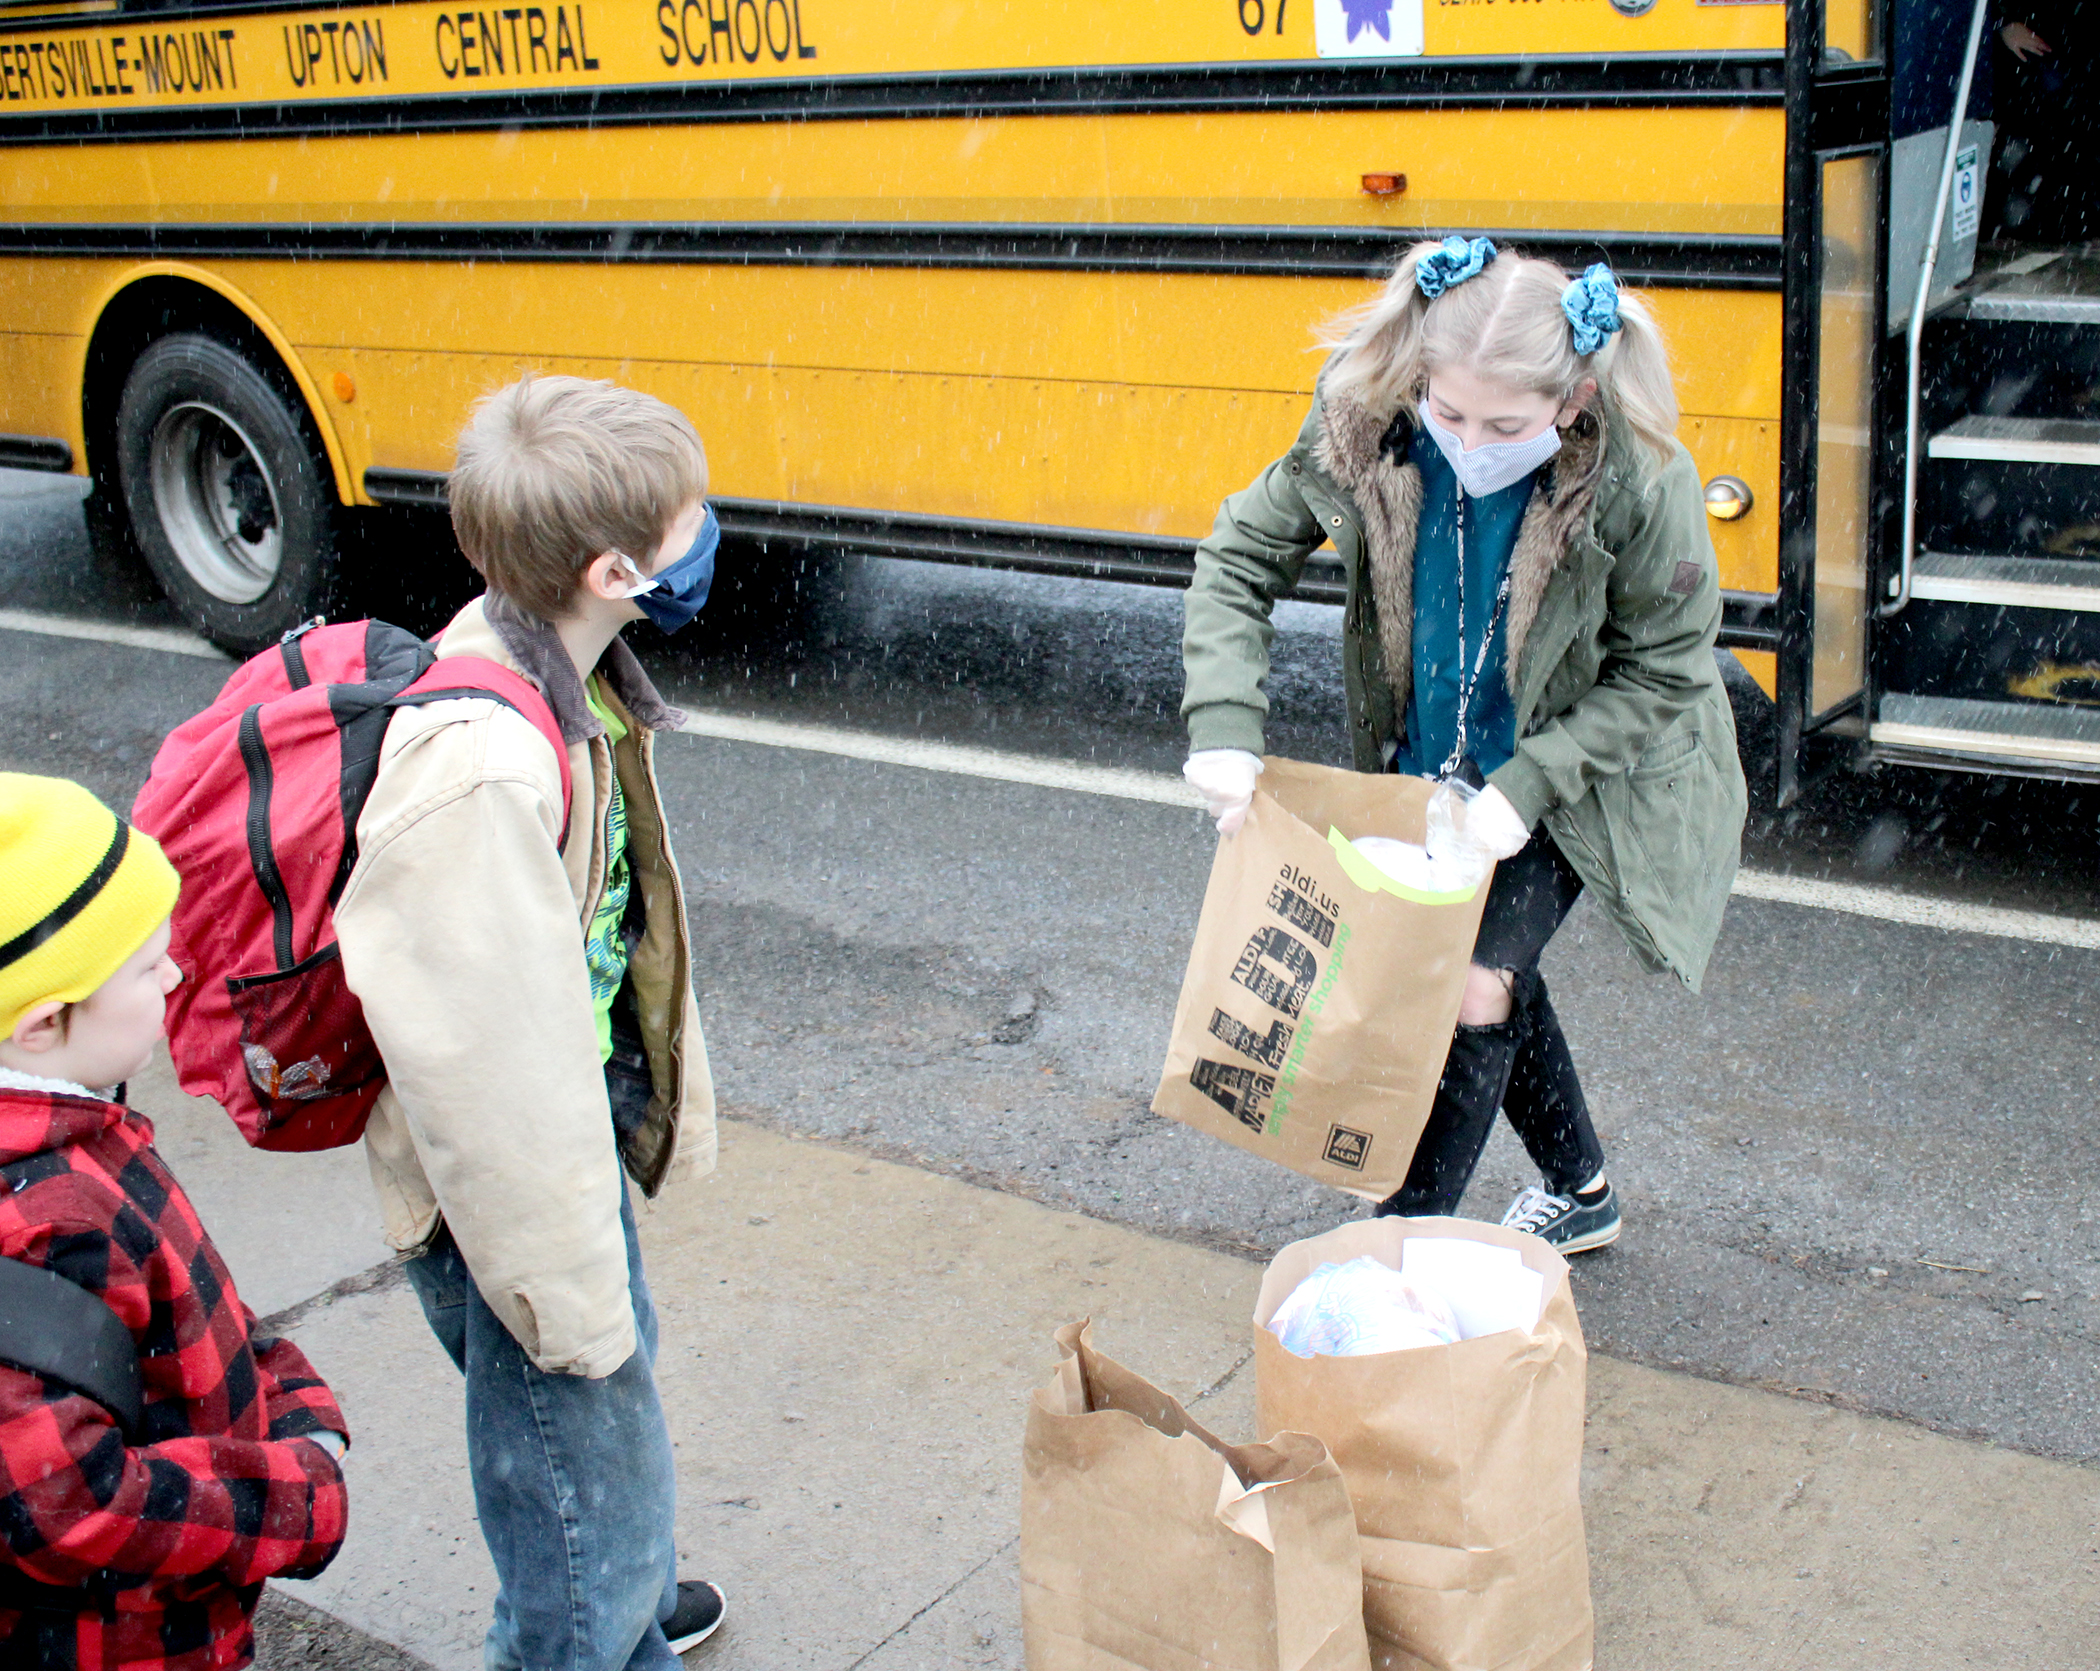 Student delivering meals from school bus (12/2020)